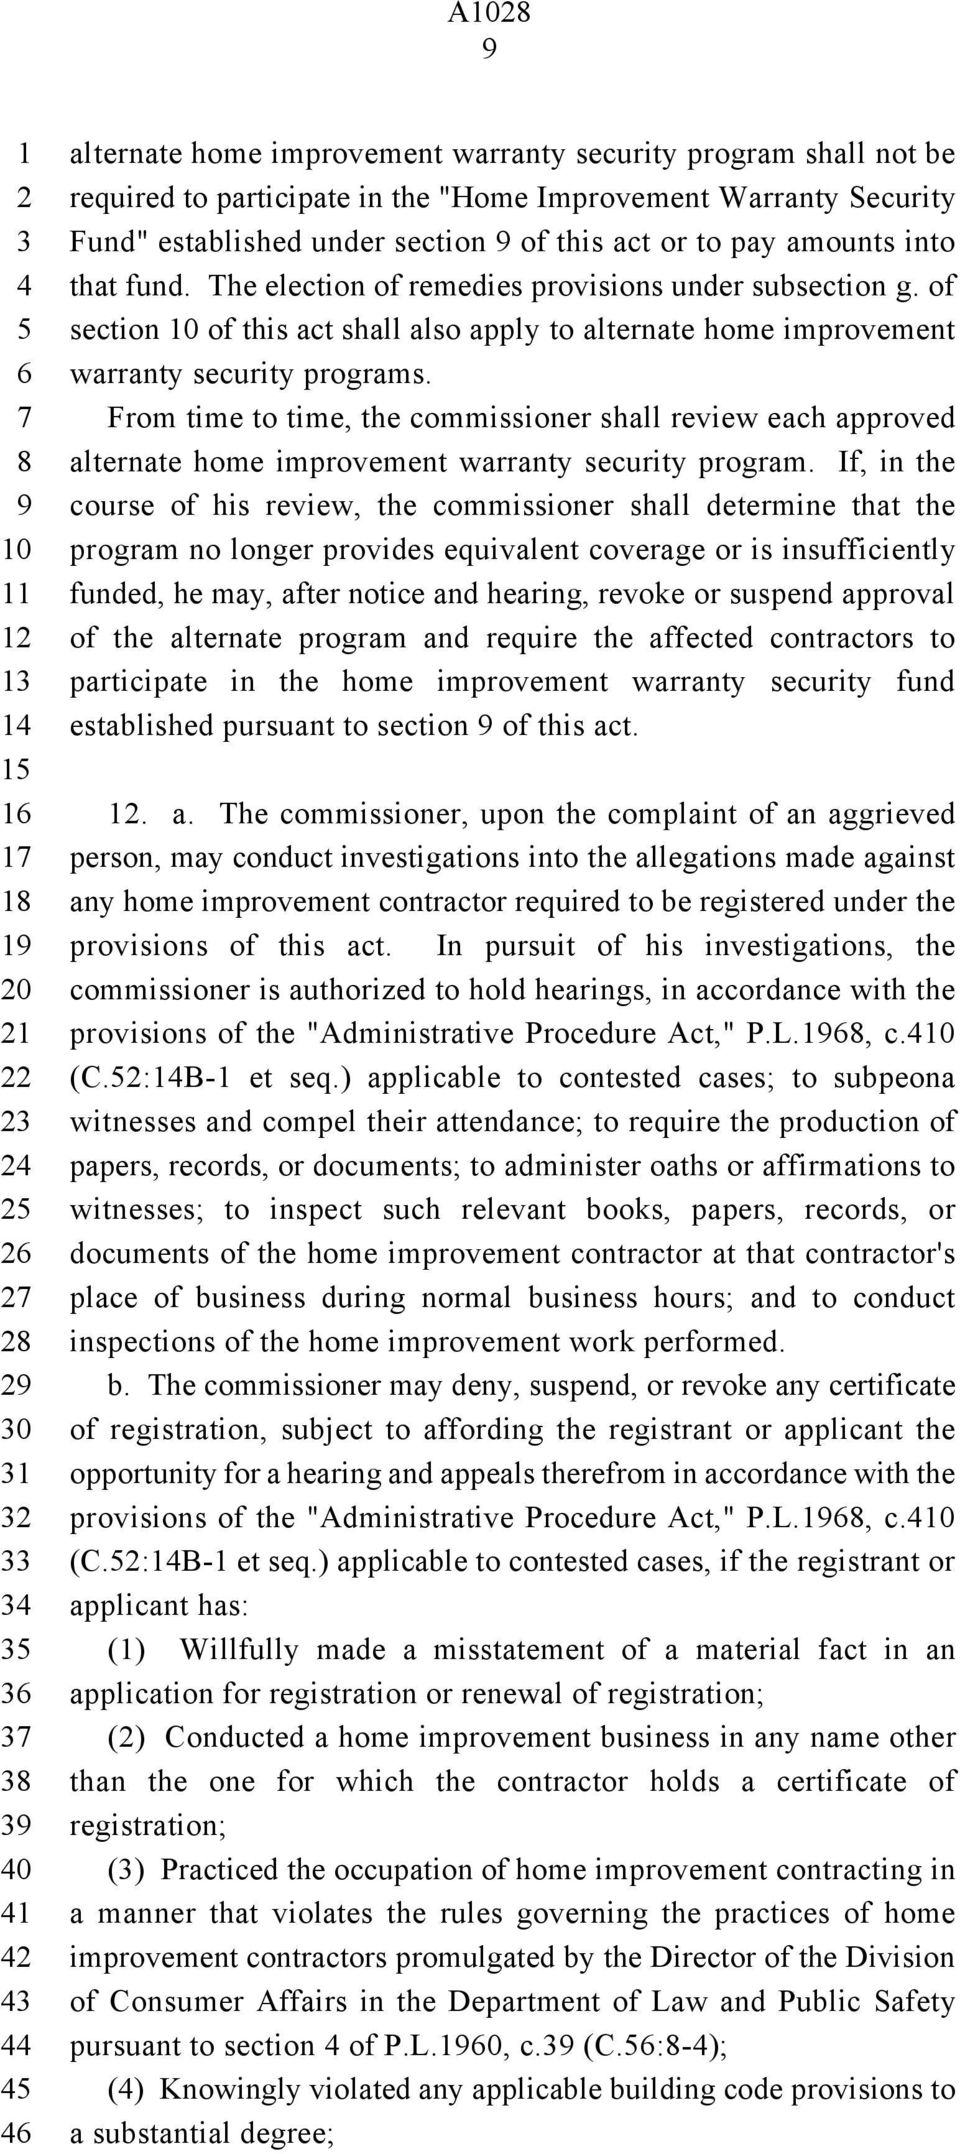 From time to time, the commissioner shall review each approved alternate home improvement warranty security program.